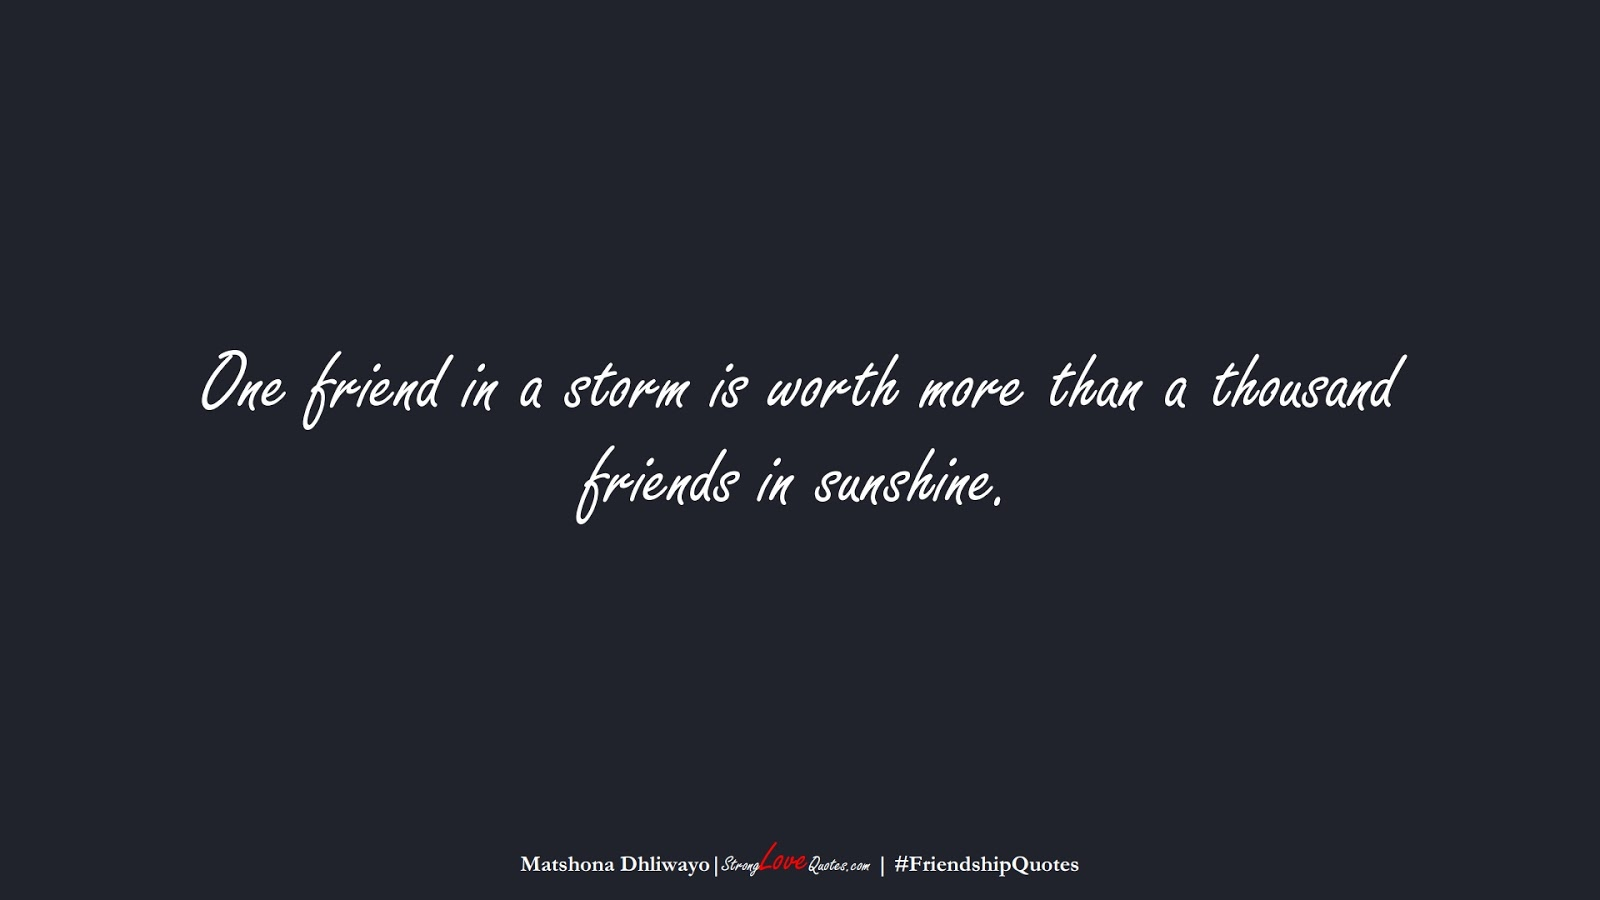 One friend in a storm is worth more than a thousand friends in sunshine. (Matshona Dhliwayo);  #FriendshipQuotes